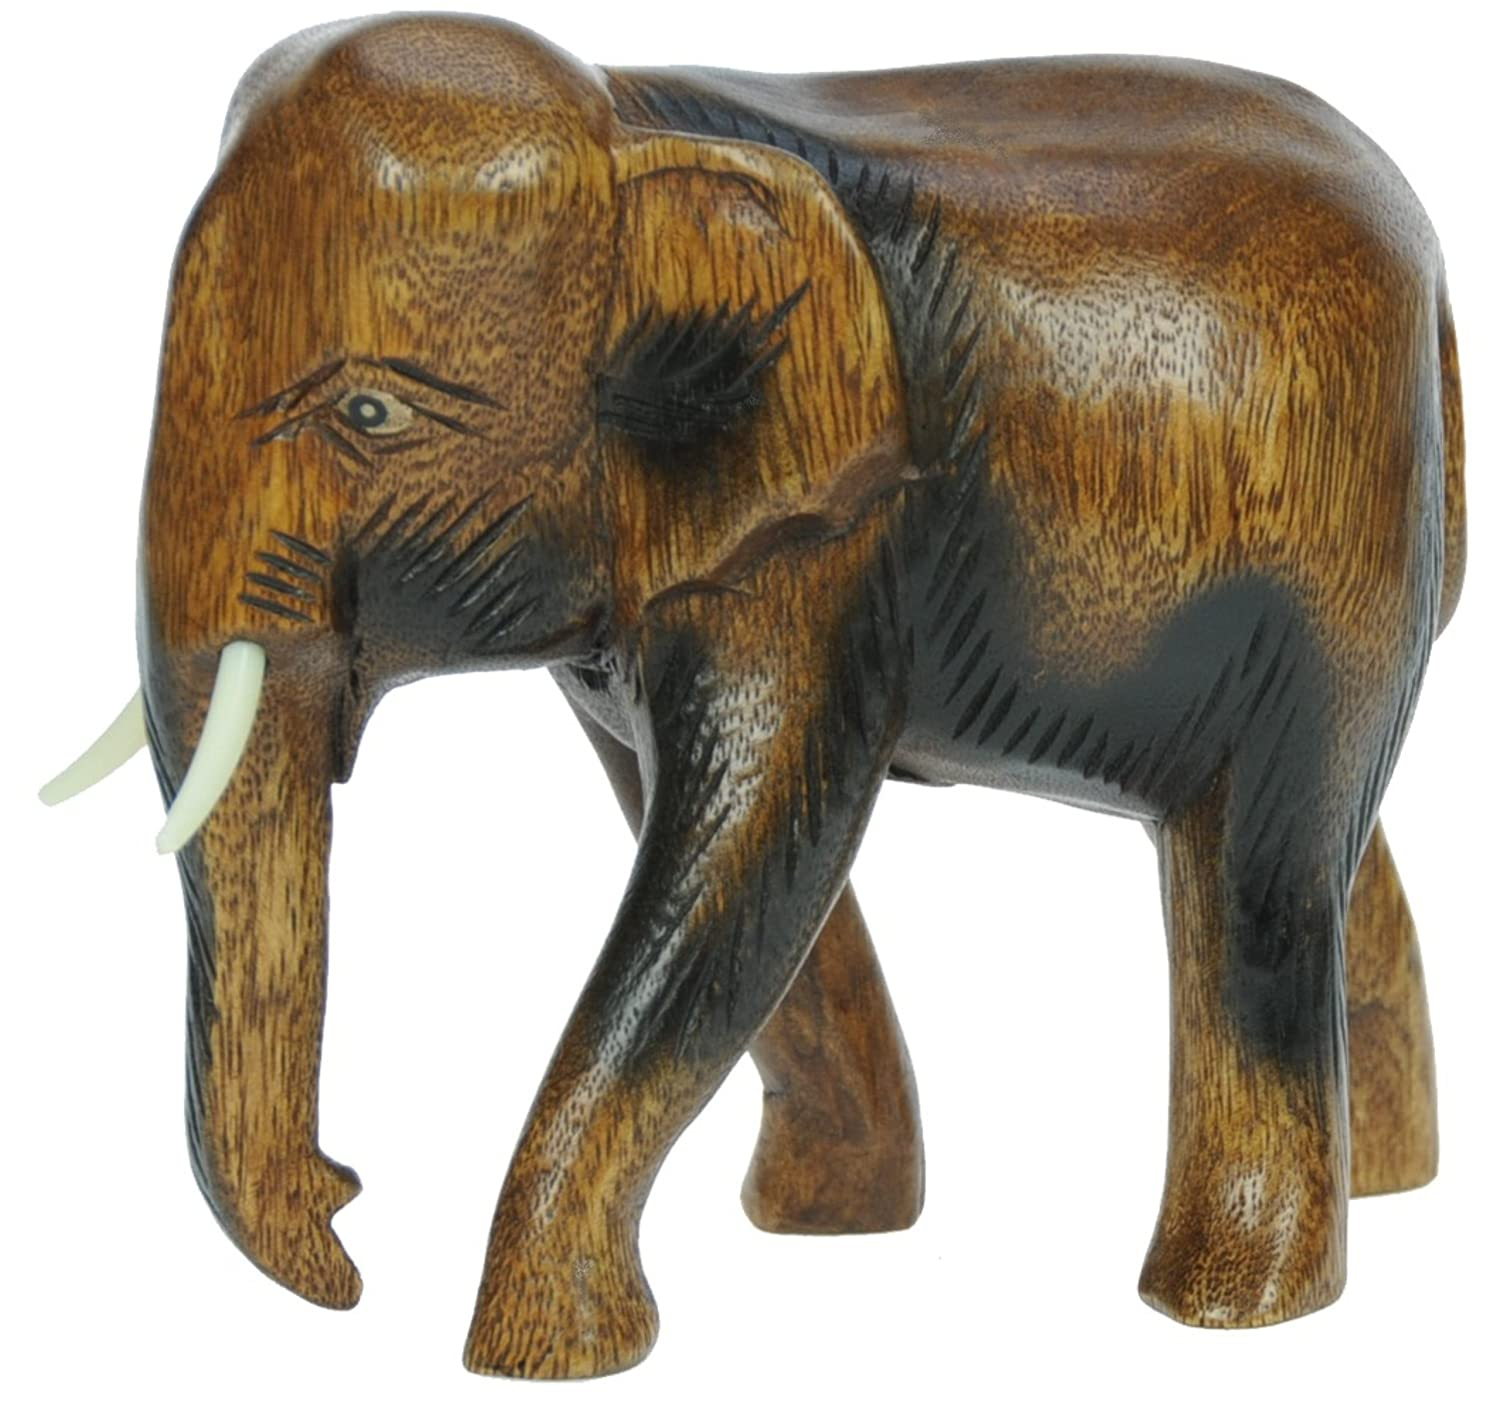 Wooden animals ornaments - Hand Carved Wooden Elephant Ornament Top Christmas And Birthday Gift Idea High Quality Traditional